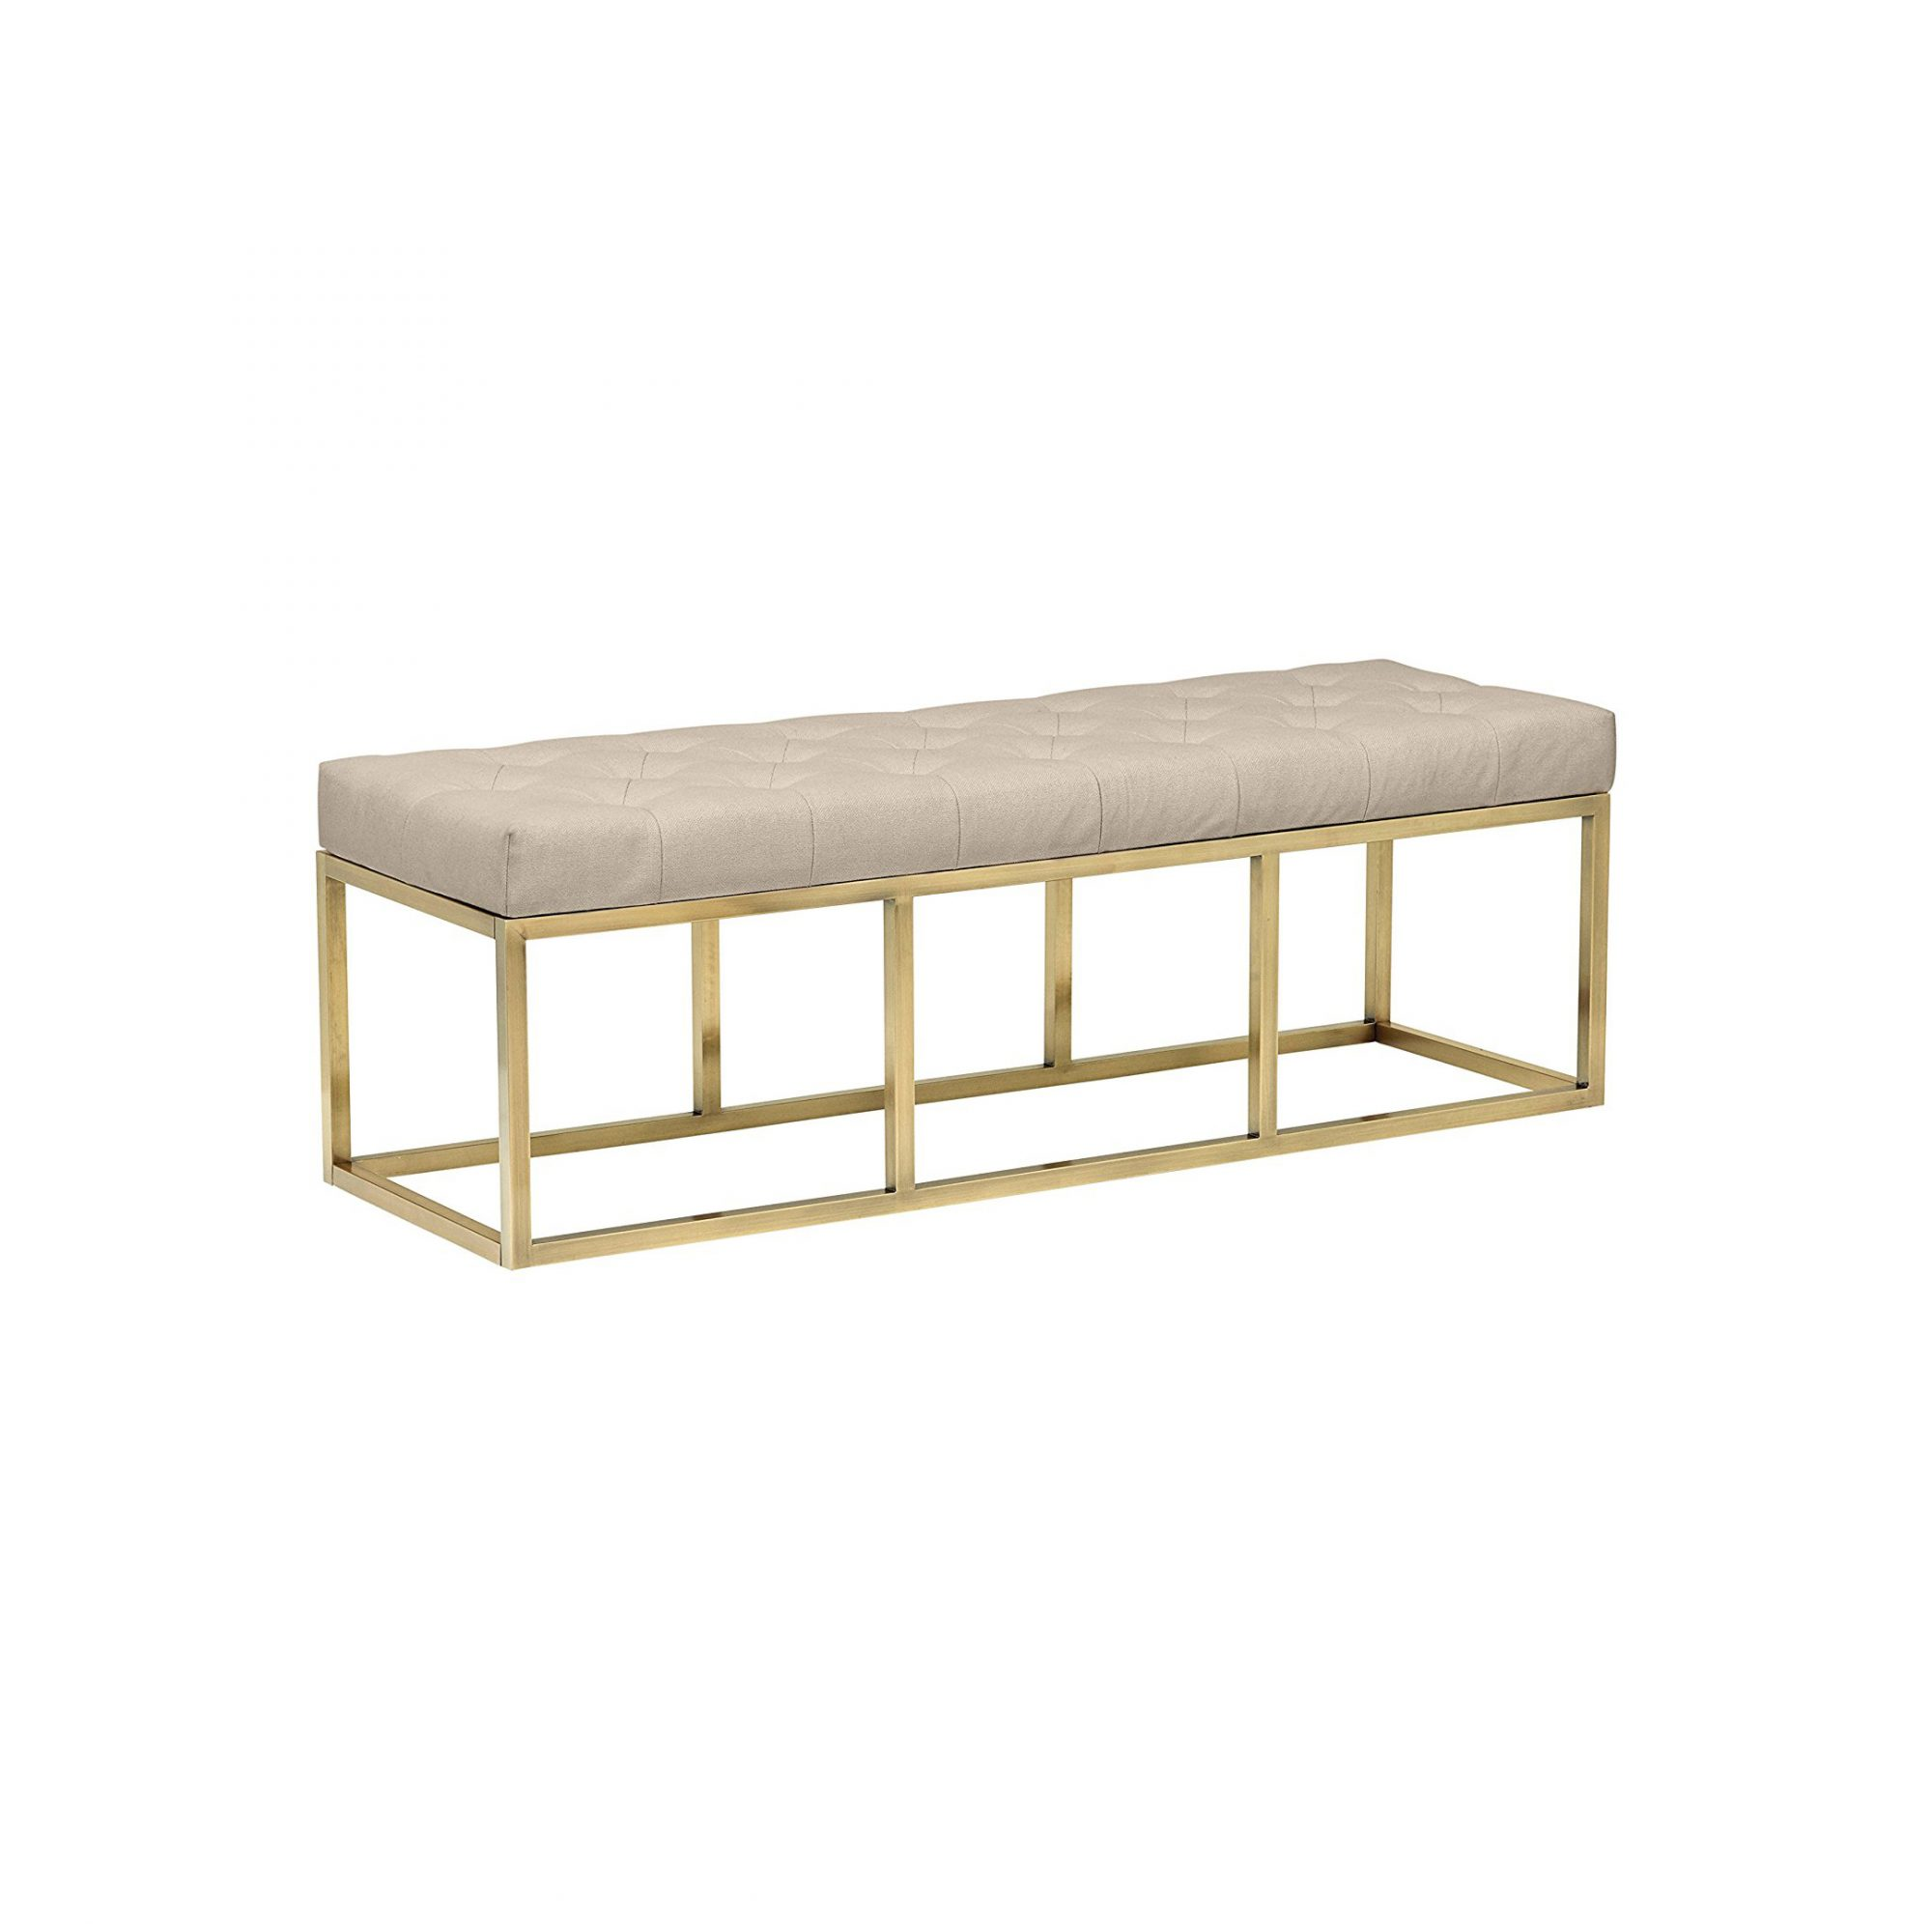 Rivet Glam Tufted Seat and Gold Legs Upholstered Bench